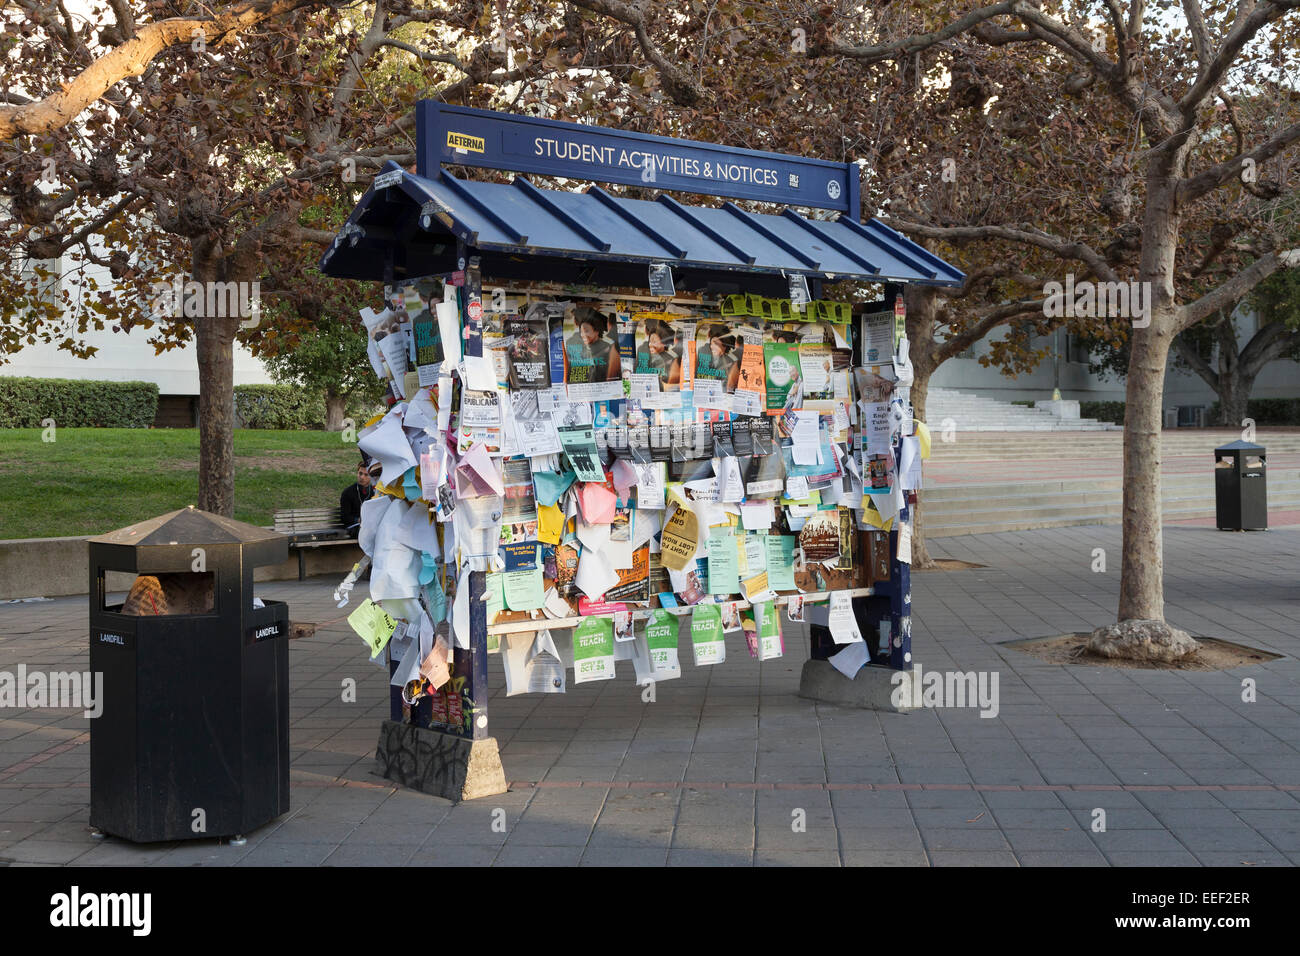 Student Activities & Notices board at the University of California Berkeley - Alameda County, California, USA - Stock Image